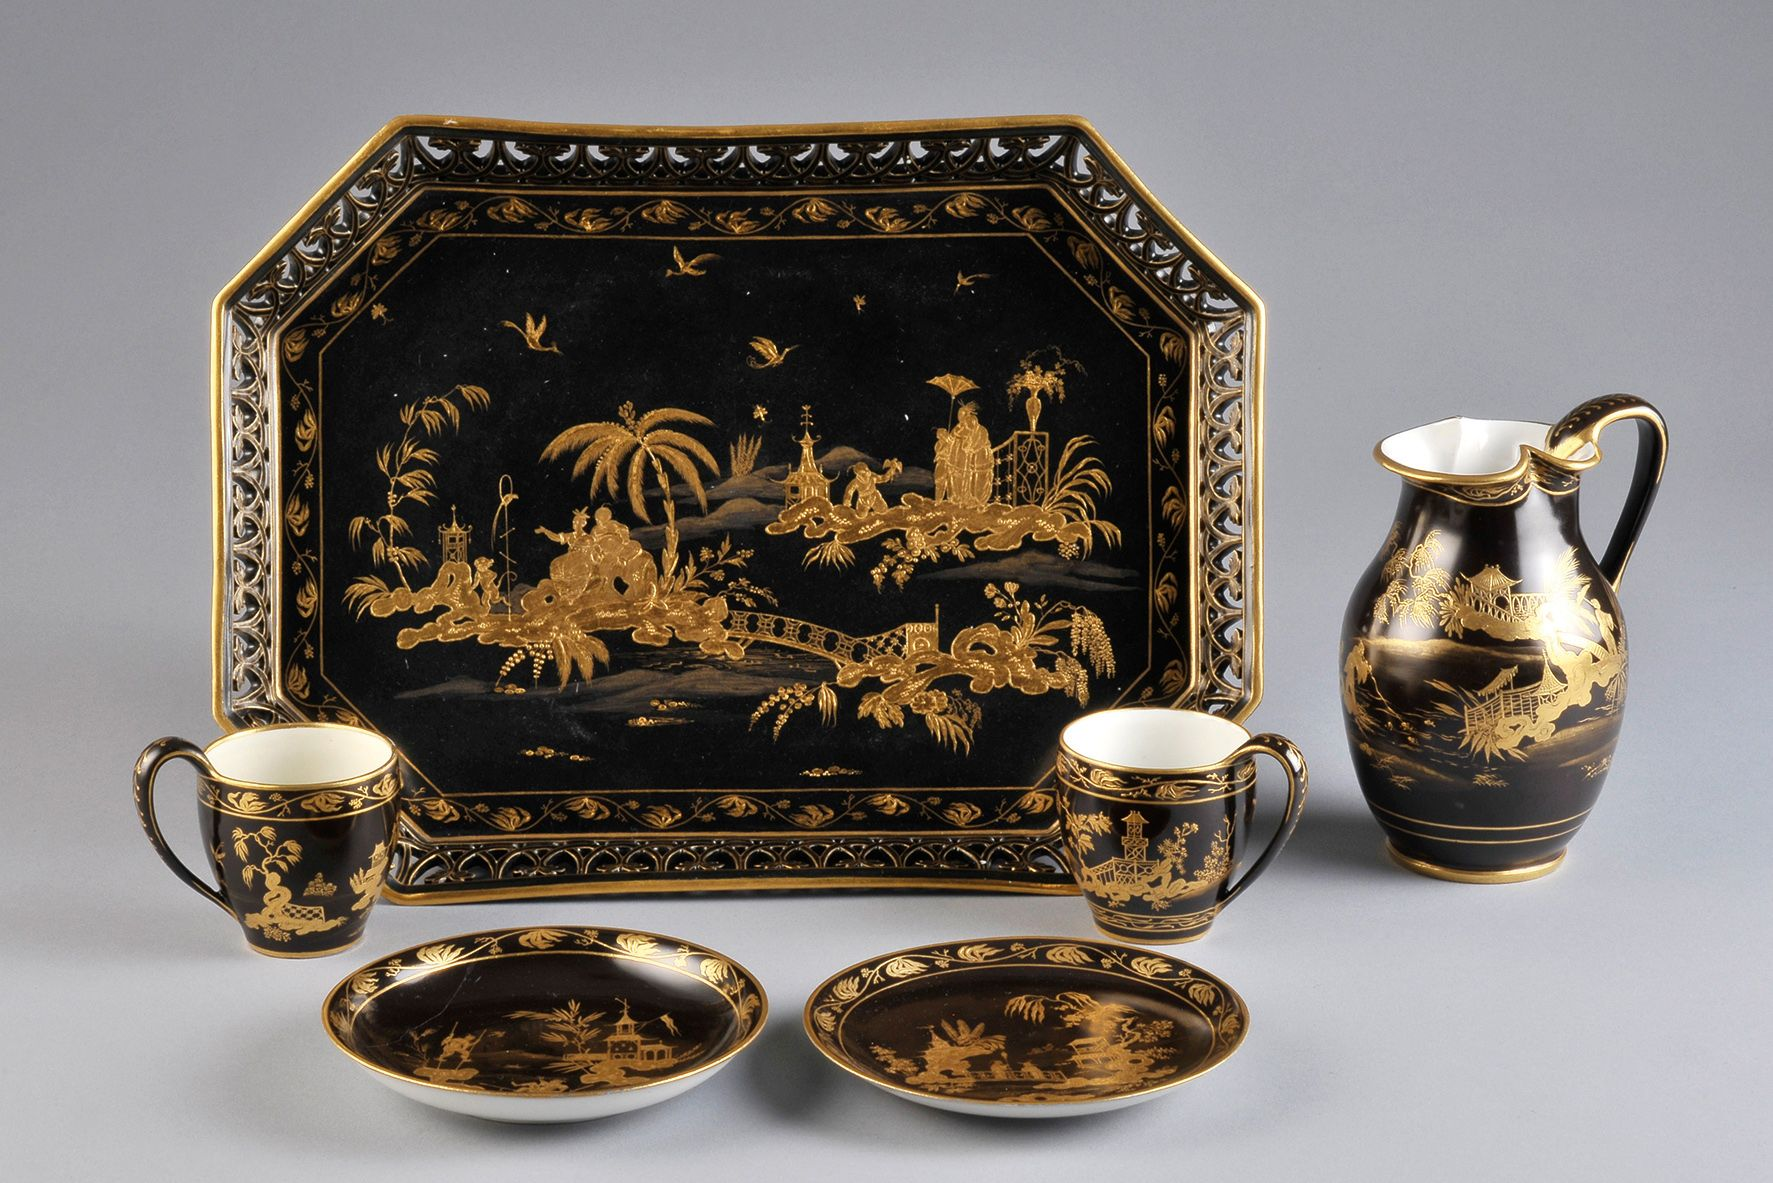 Be amazed at the intricacy of one of the oldest porcelain manufactories in Europe at the MAK.